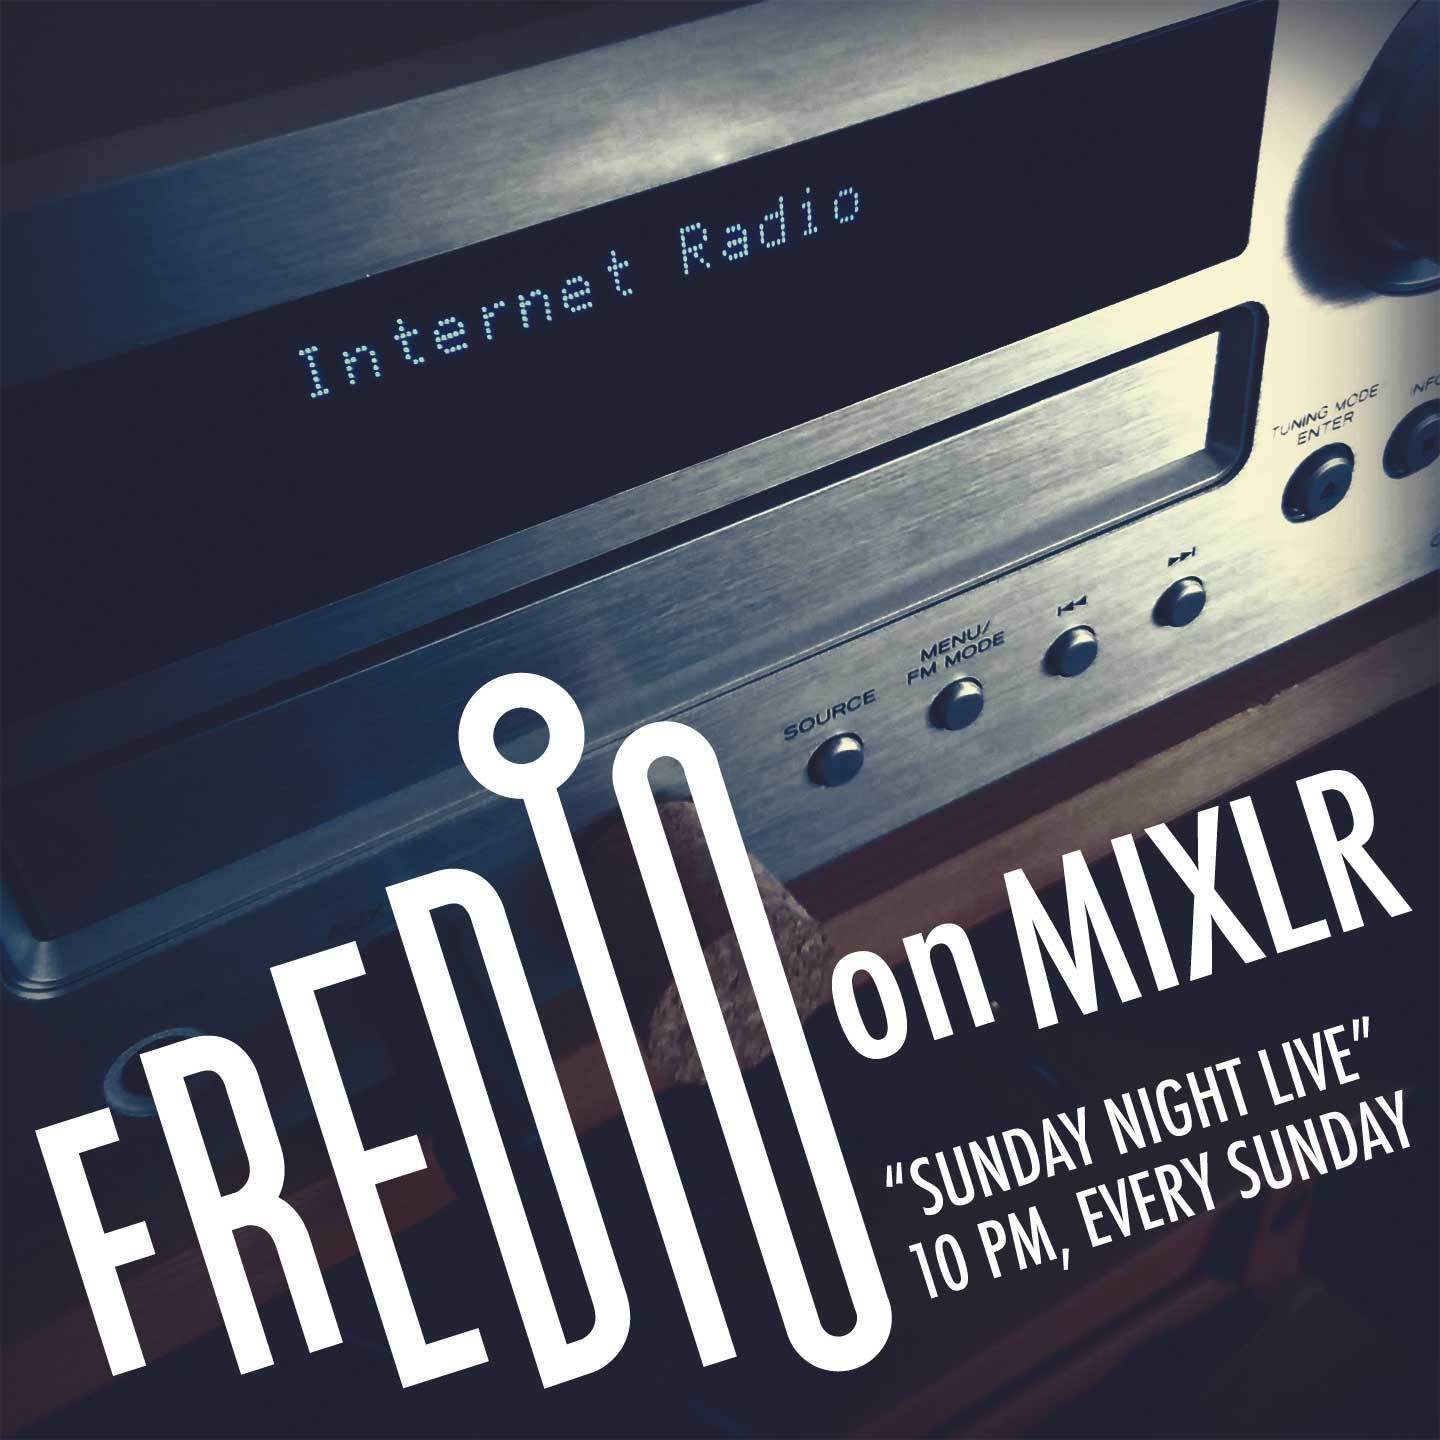 Fredio on Mixlr / SUNDAY NIGHT LIVE